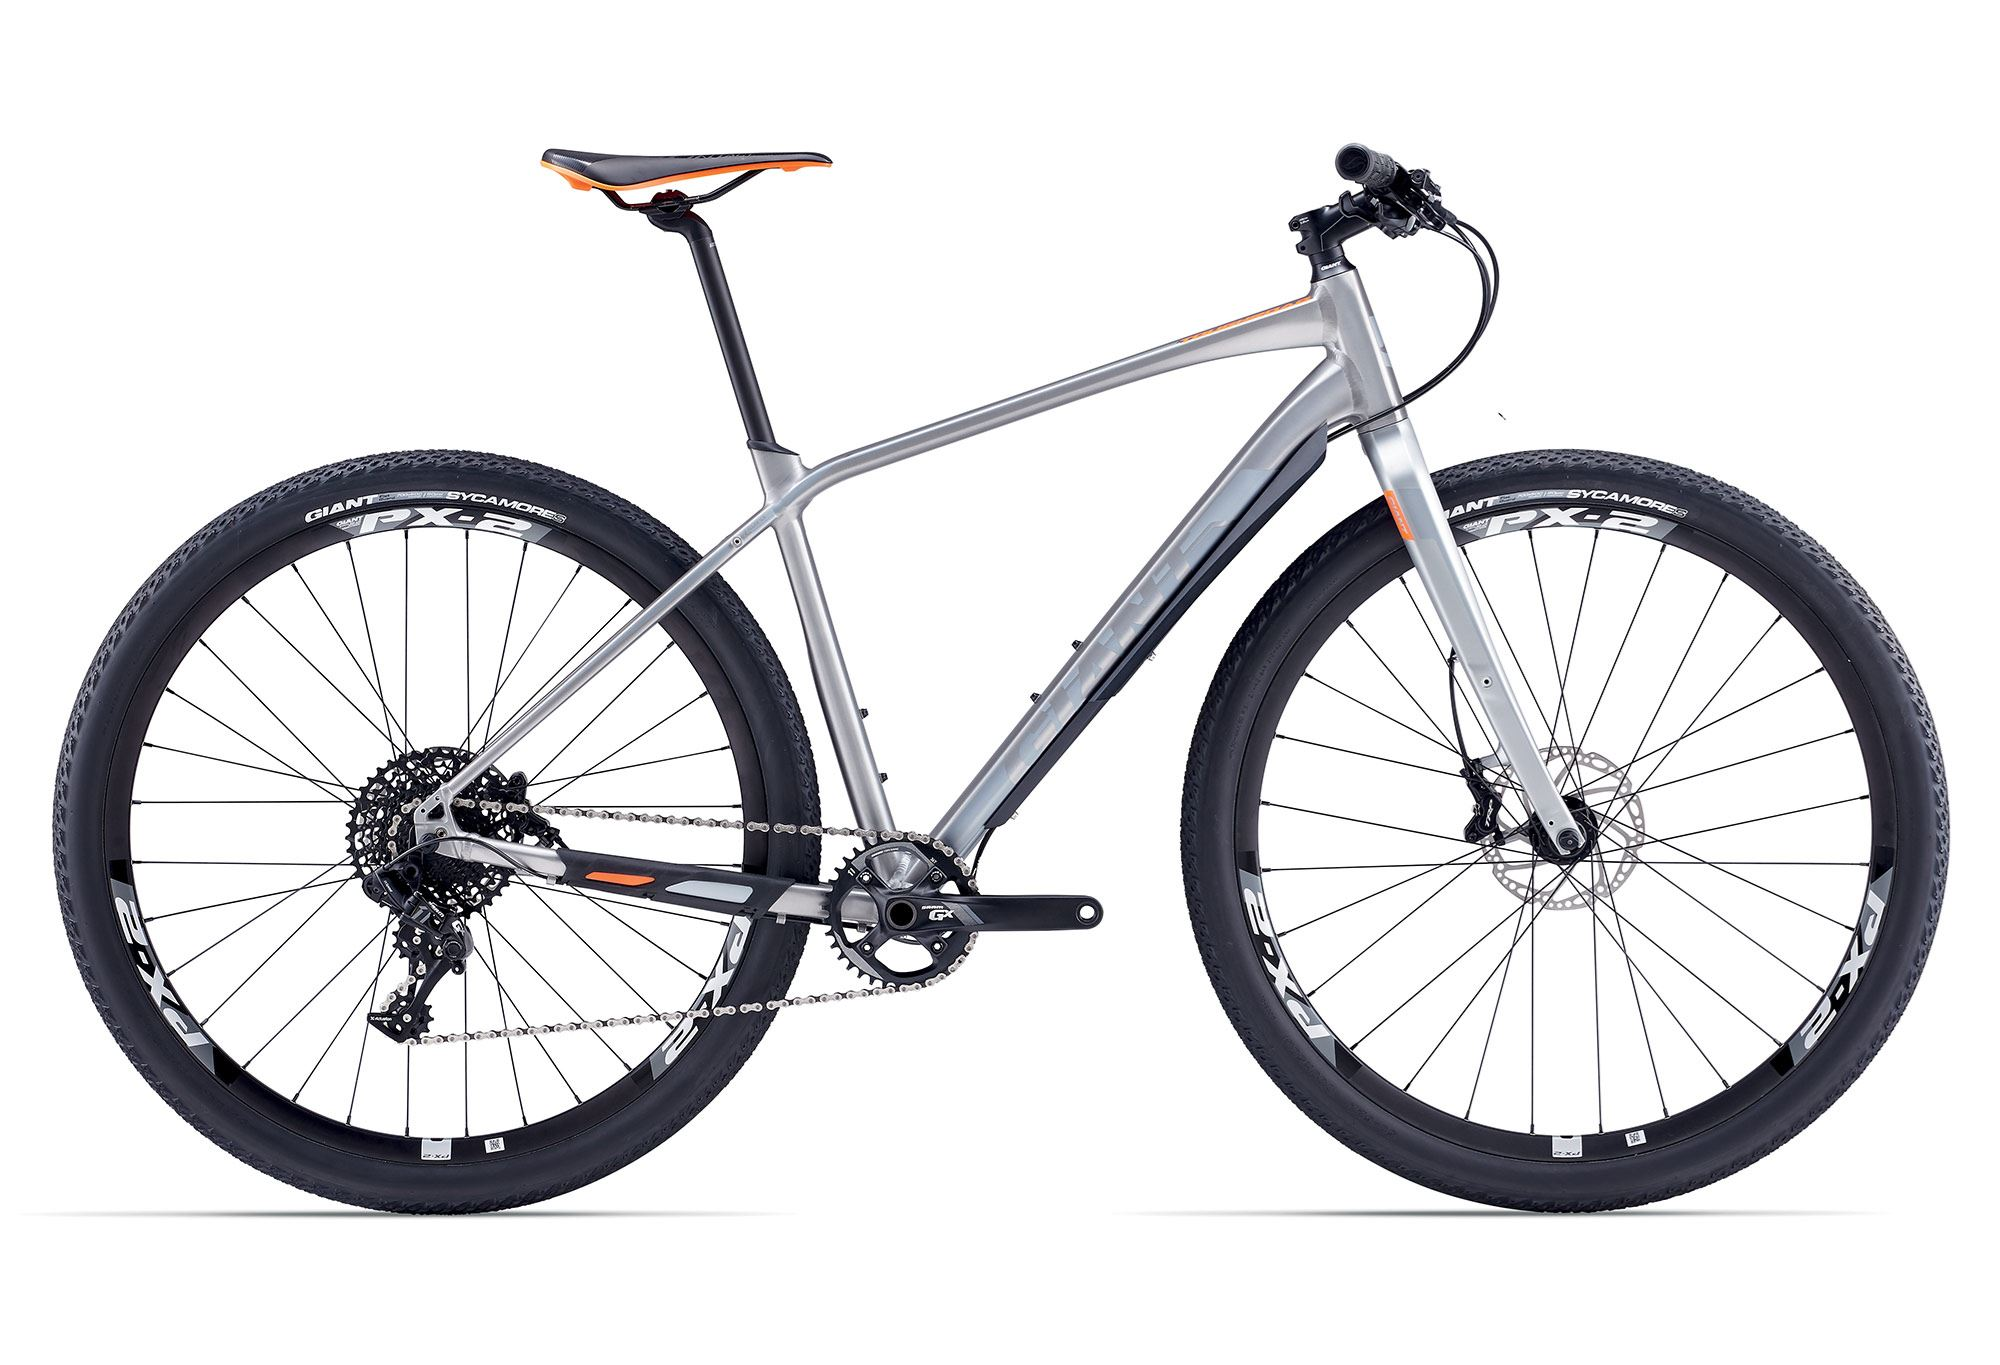 2017 Giant ToughRoad SLR 0 £1199